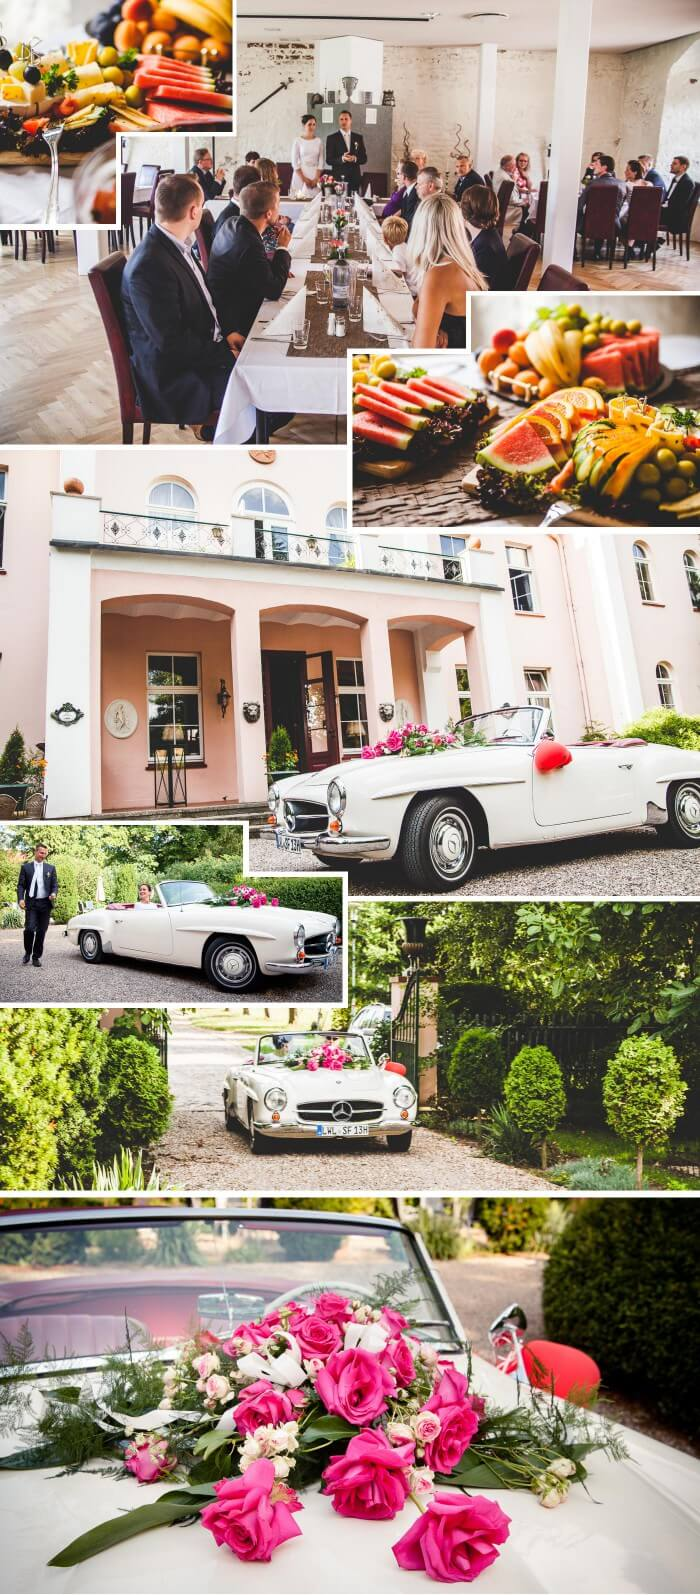 1632424766 340 English wedding in the castle 2 charming photo stories - English wedding in the castle   2 charming photo stories with many inspirations